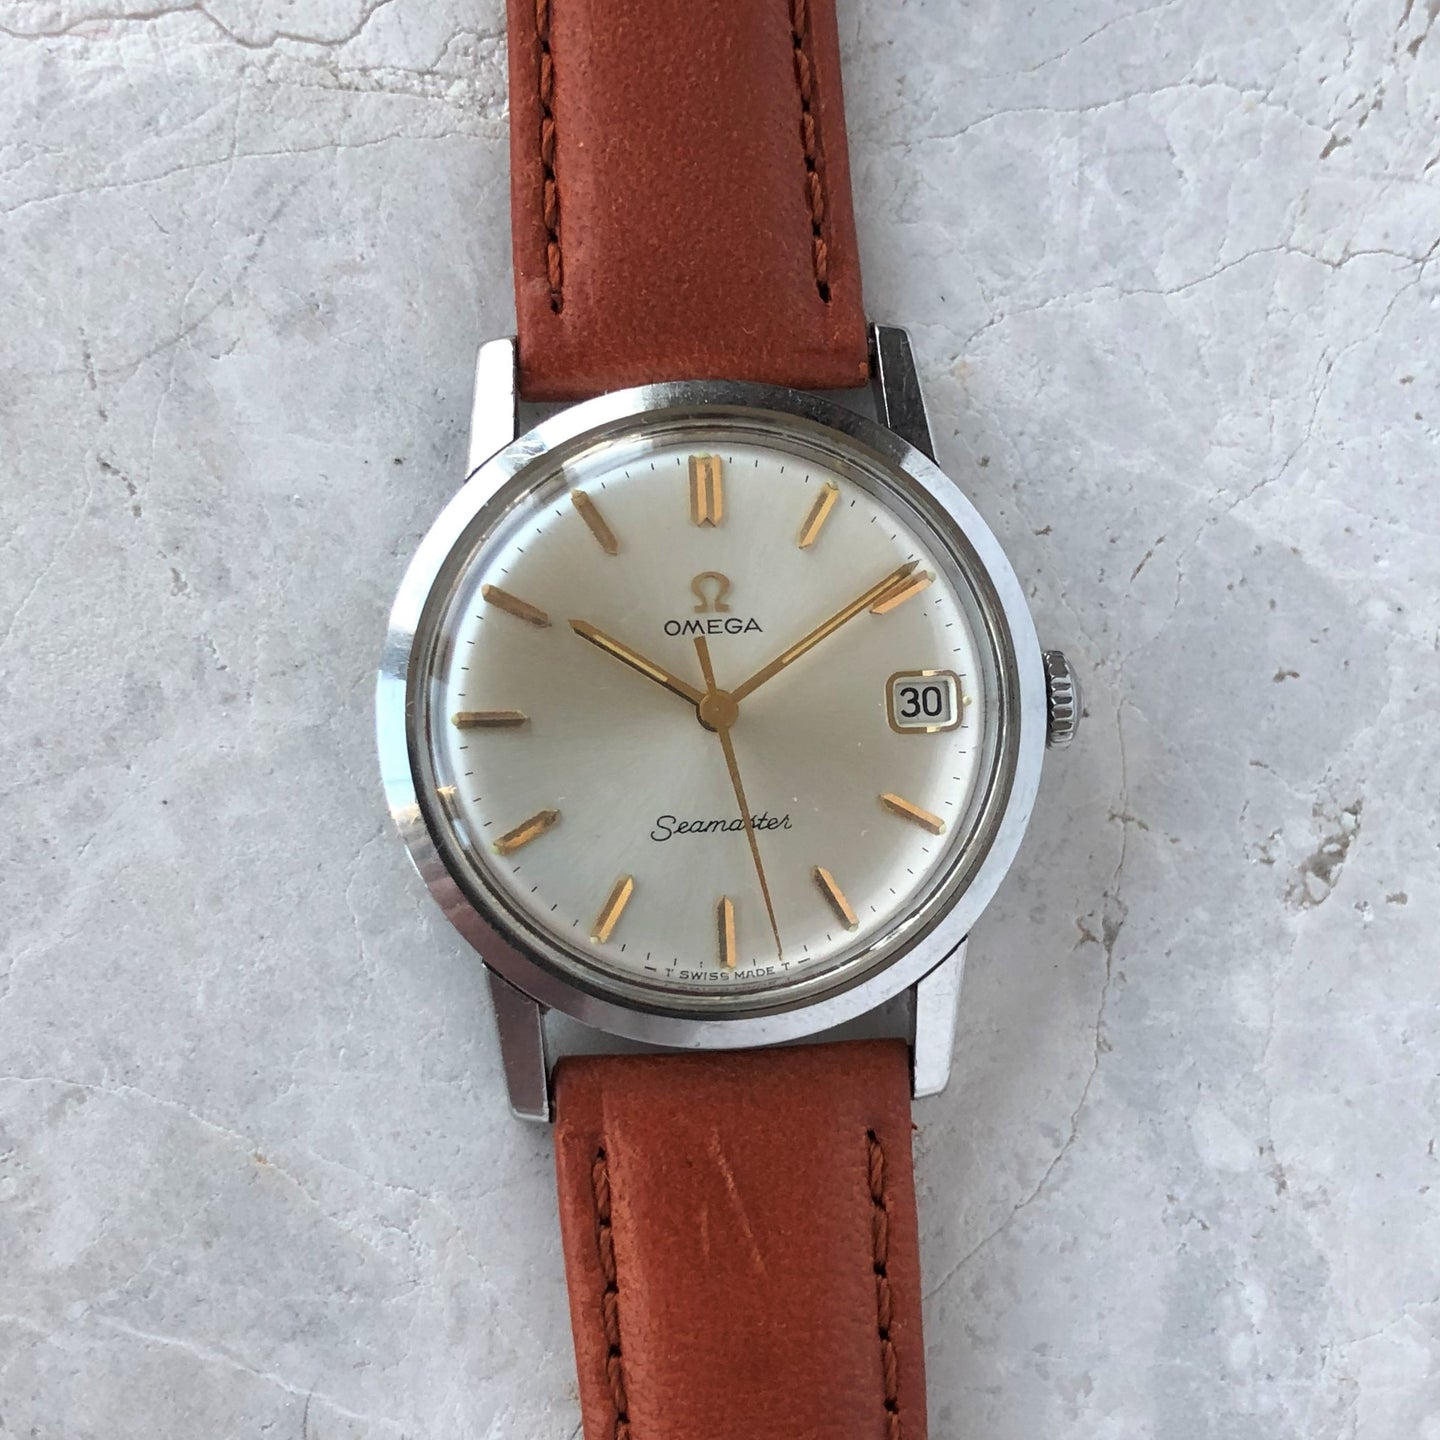 Vintage Omega Seamaster with date